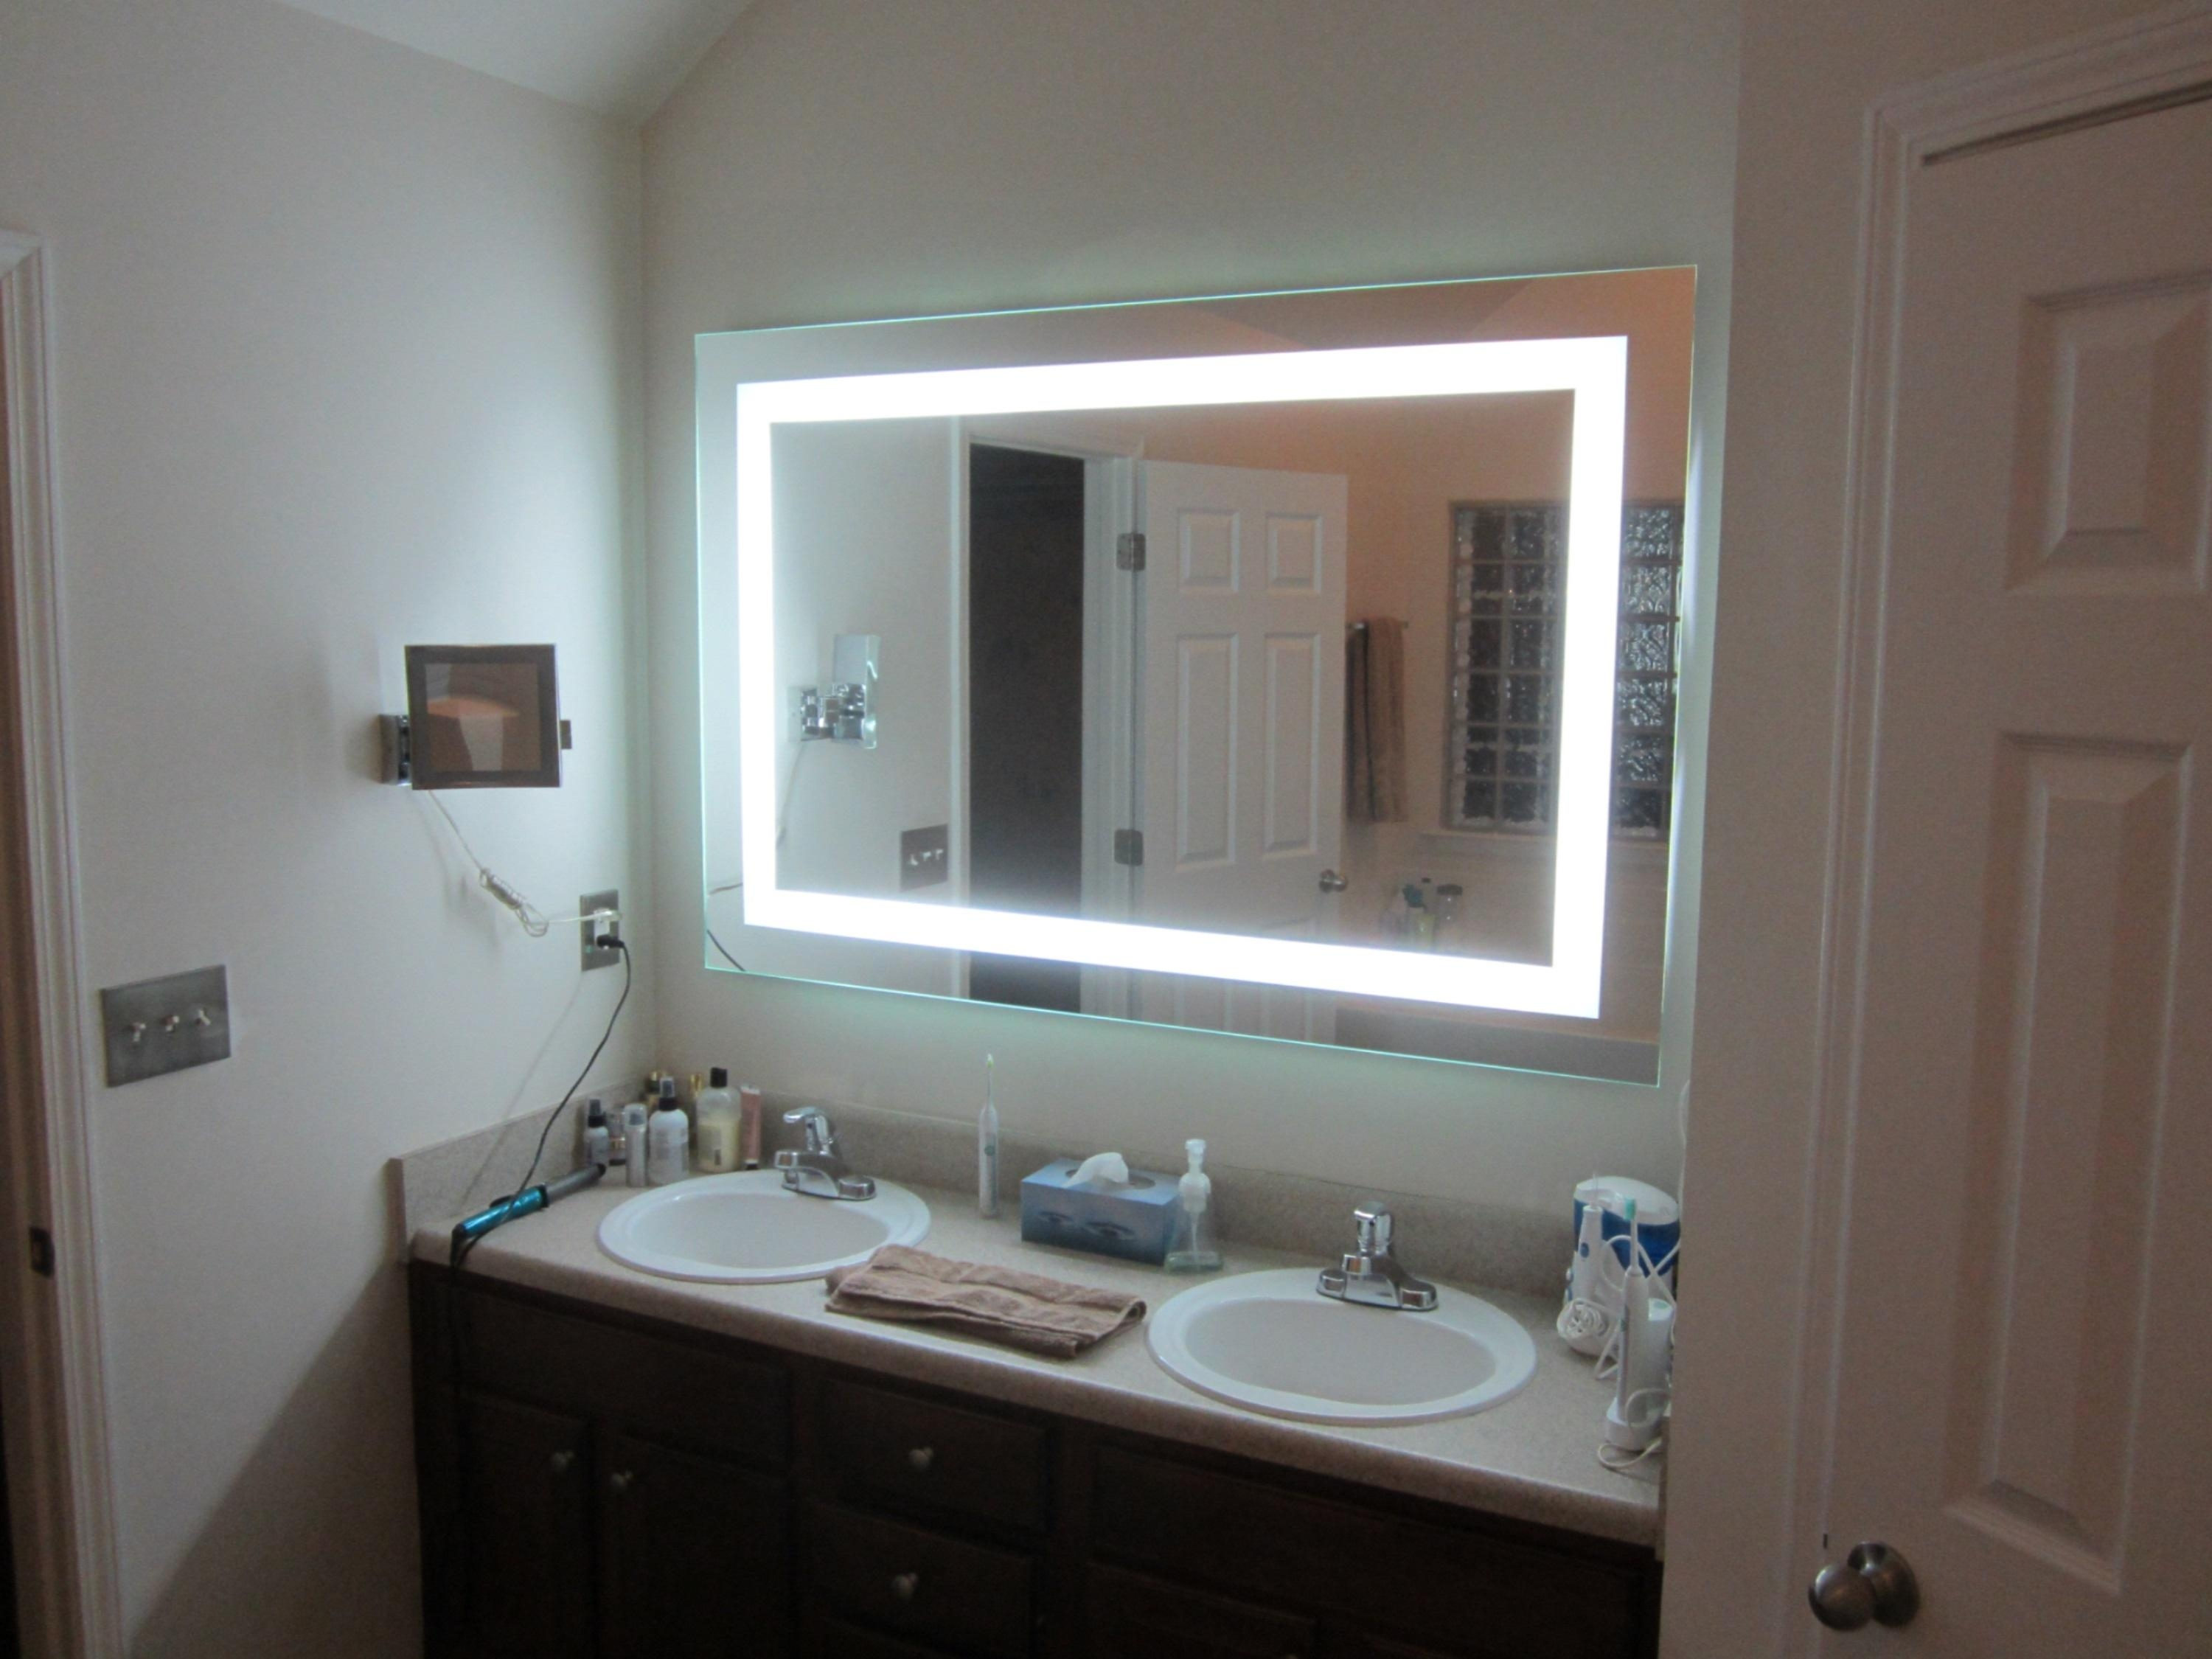 Lighted Vanity Mirror Pertaining To Wall Mounted Lighted Makeup Mirrors (Image 7 of 20)